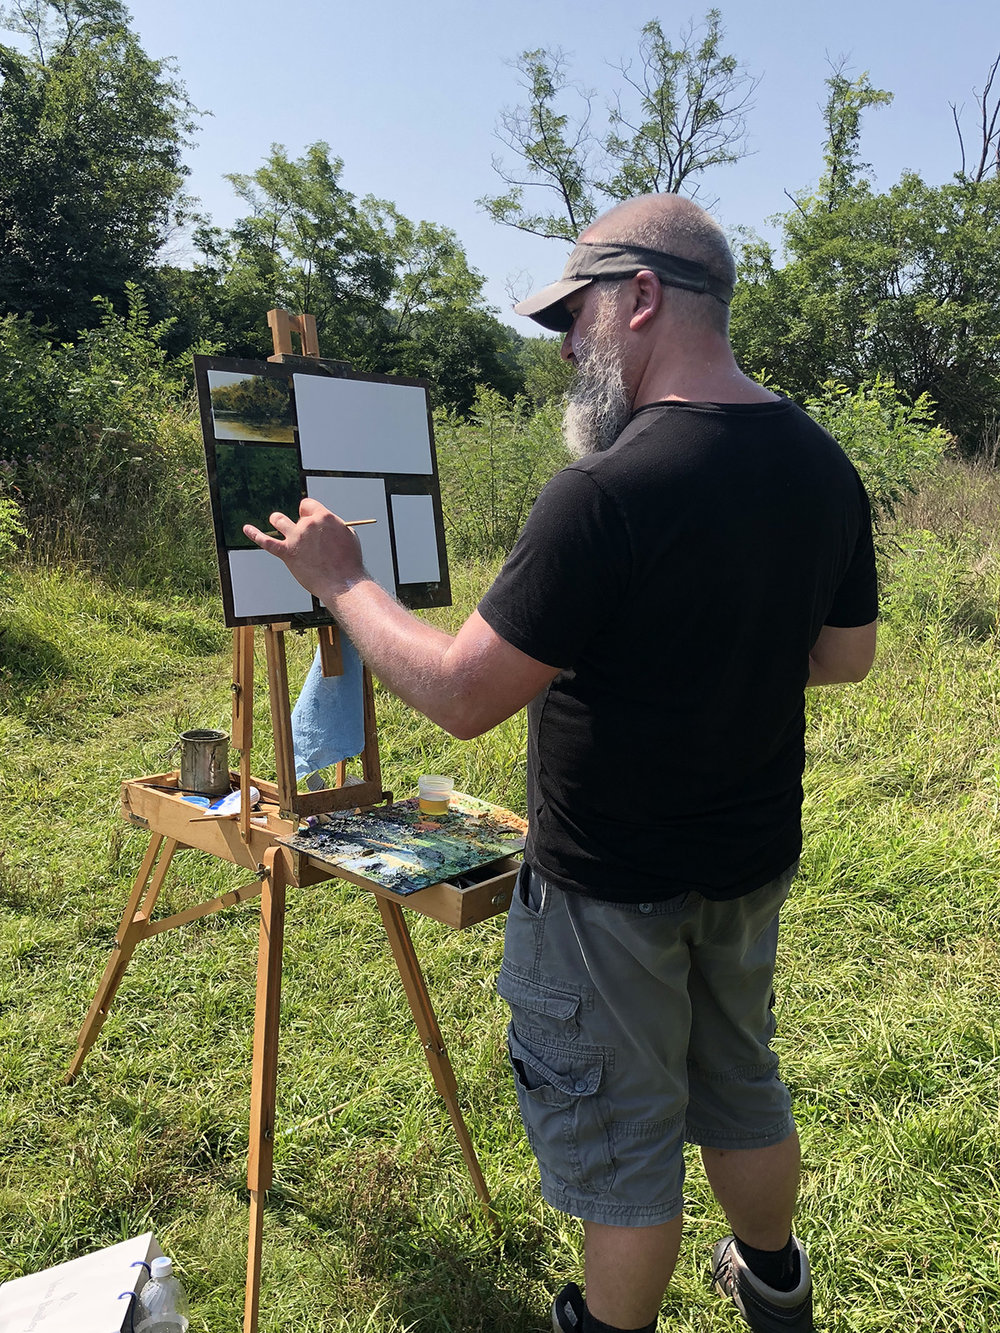 Earlier this summer, Shawn Krueger stopped through Indianapolis and painted with us for a couple of days.